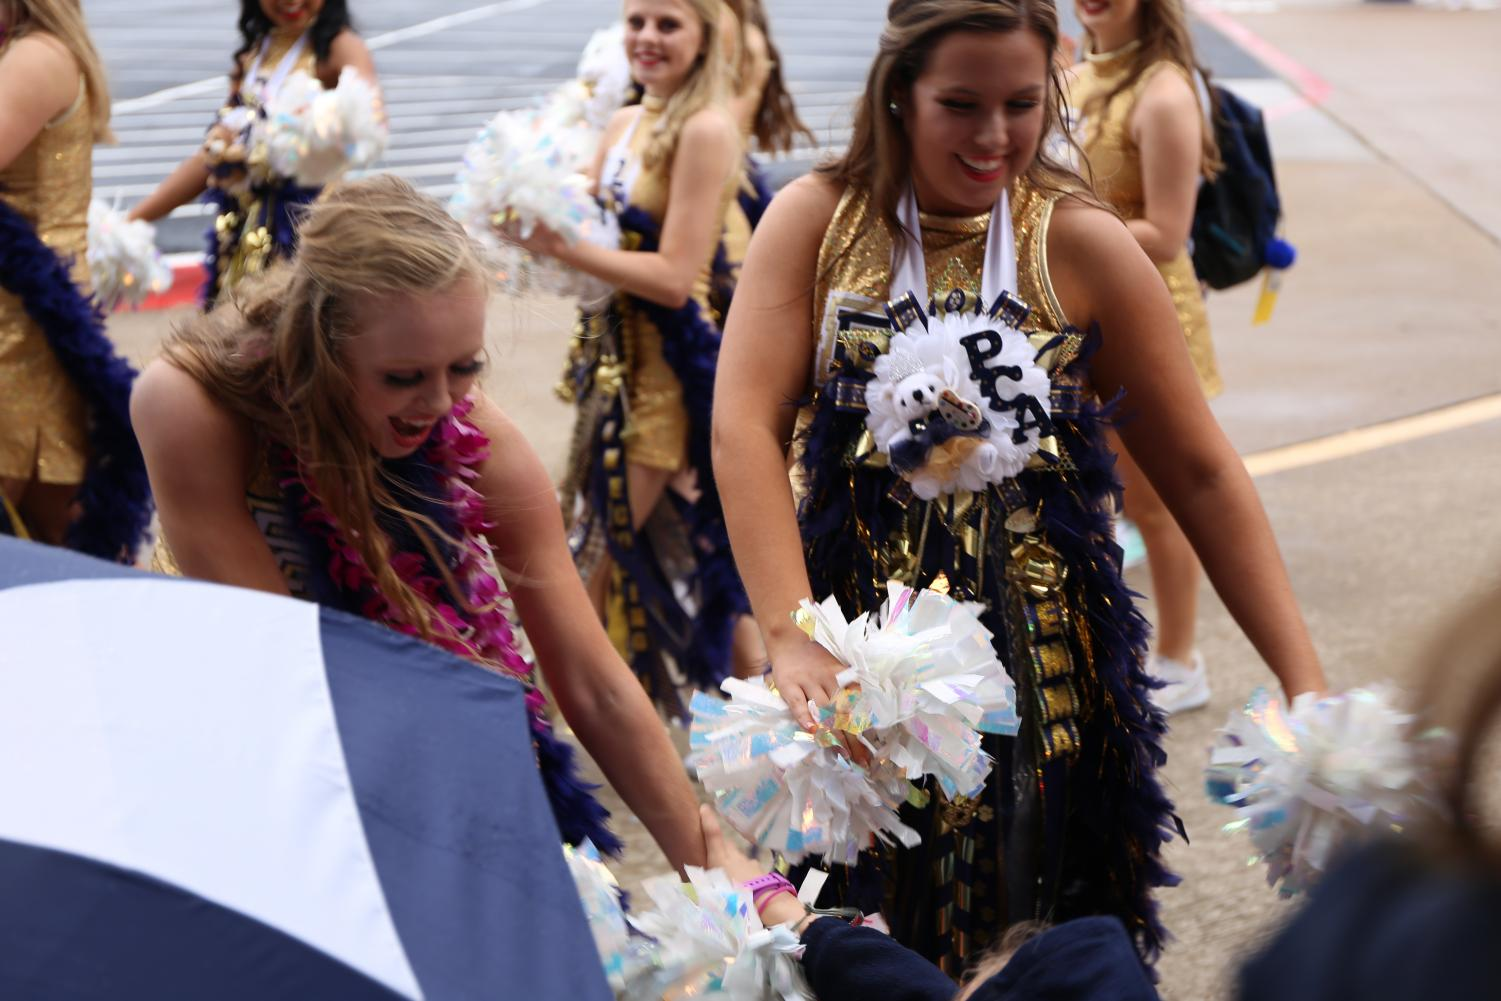 Isabelle+Simpson+%2811%29+and+Emma+Stephens+%2810%29+greet+excited+Lower+School+students+at+the+Homecoming+Parade.+